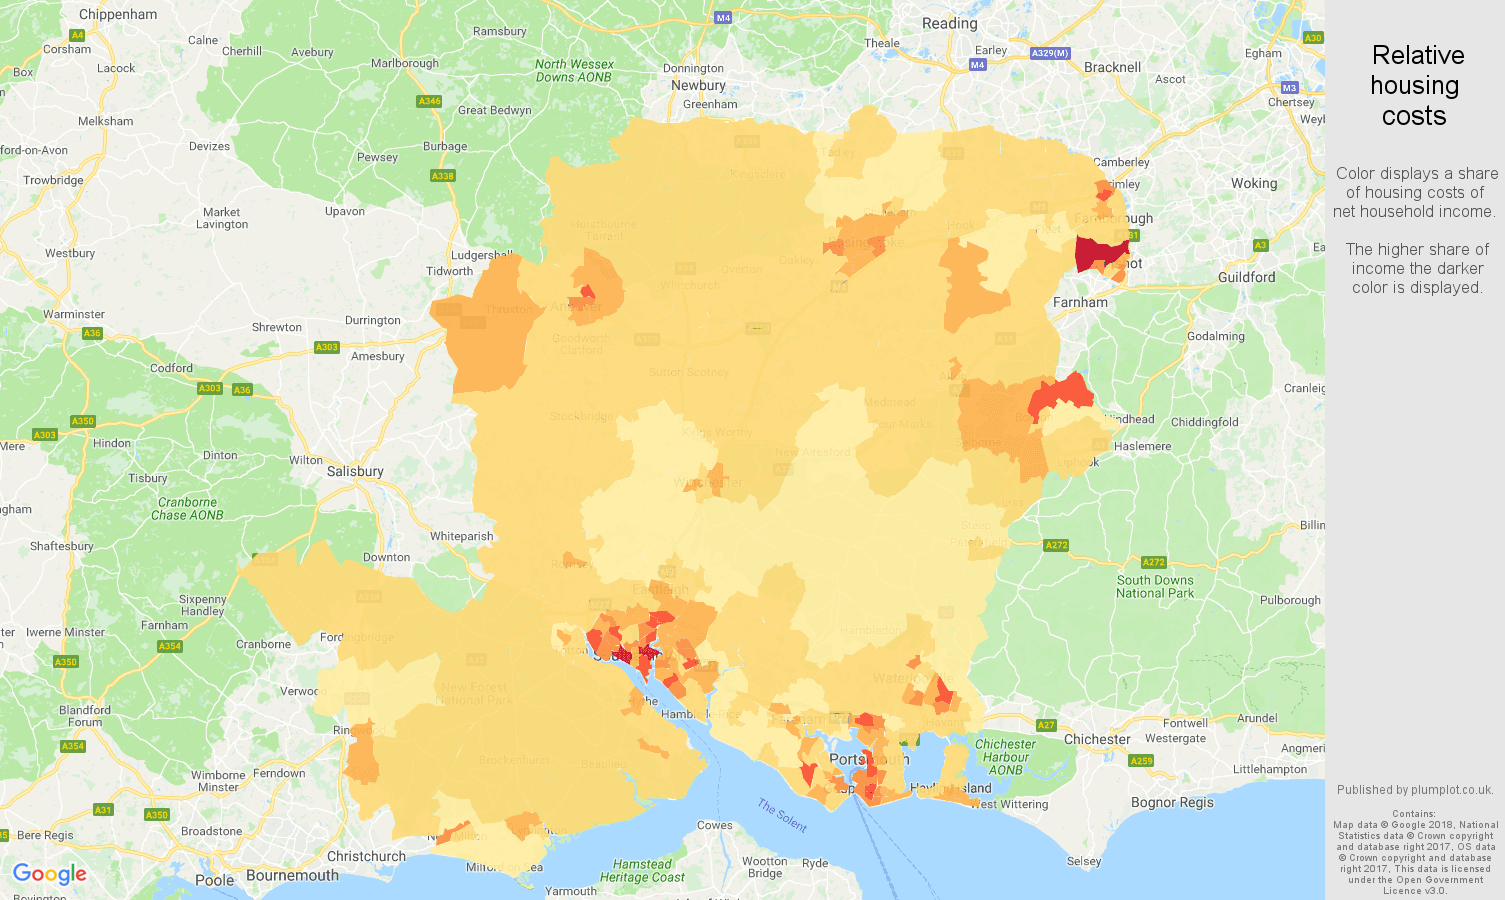 Hampshire relative housing costs map